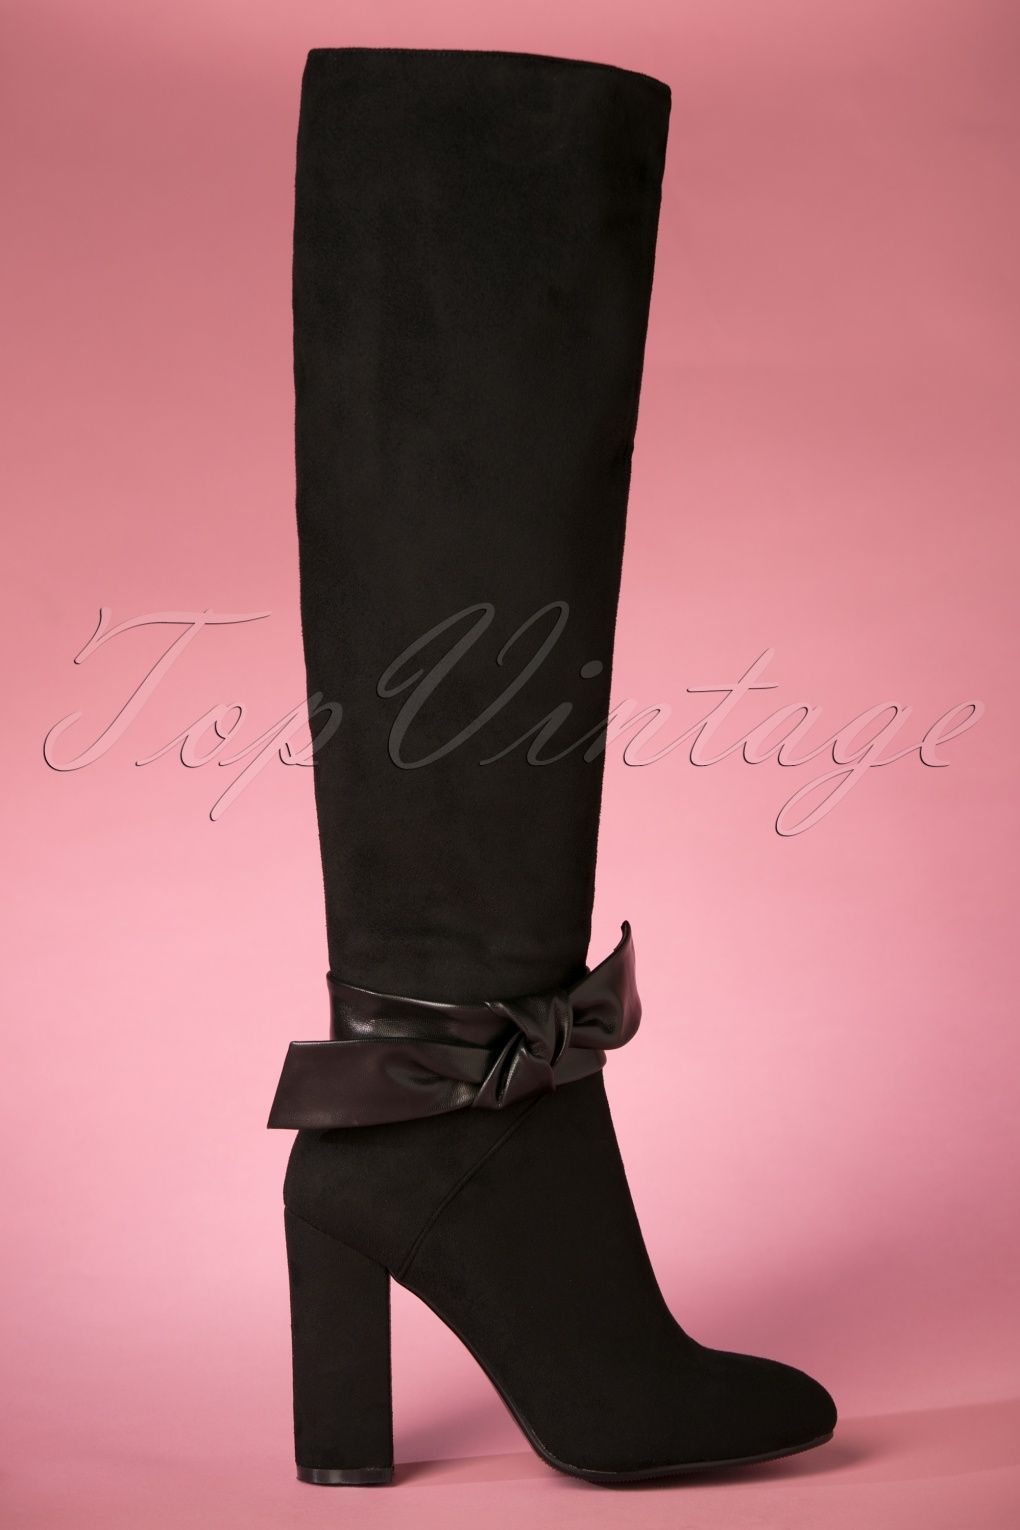 60s Shoes, Boots | 70s Shoes, Platforms, Boots 60s Nero Boots in Black £97.28 AT vintagedancer.com